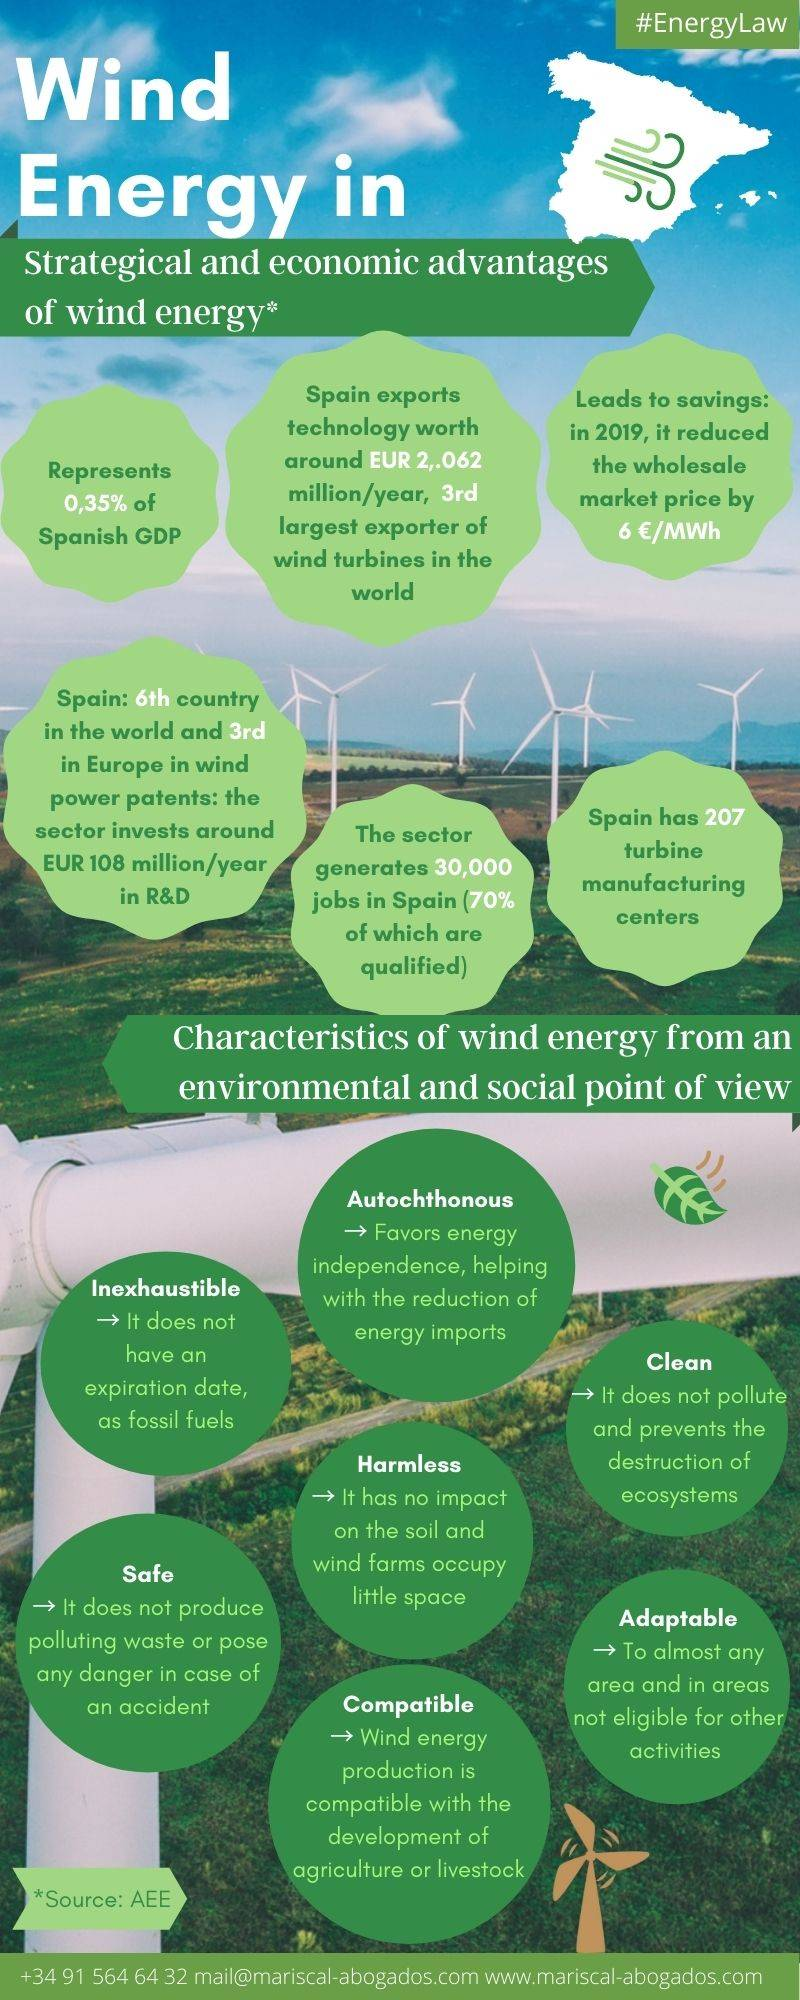 Advantages of wind energy in Spain